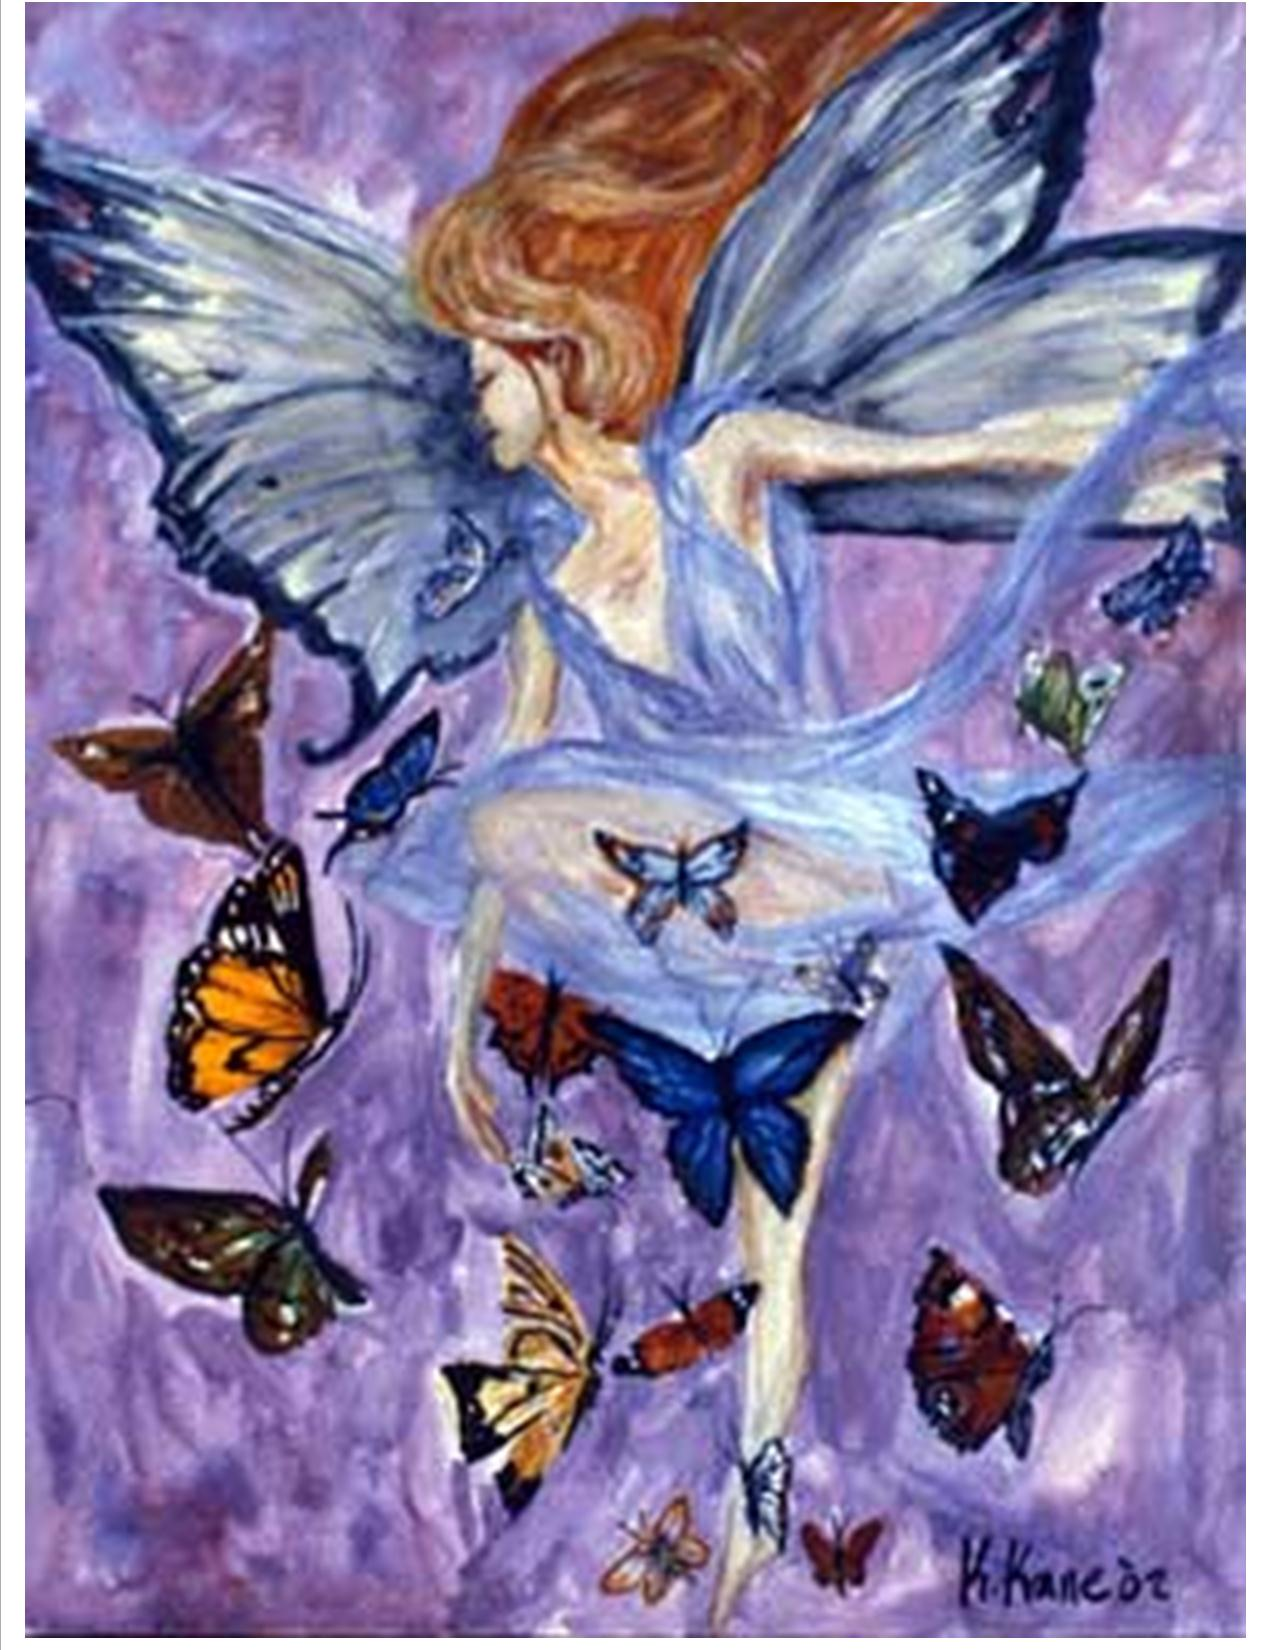 Butterfly Woman Rising: a New Venus Cycle in Gemini